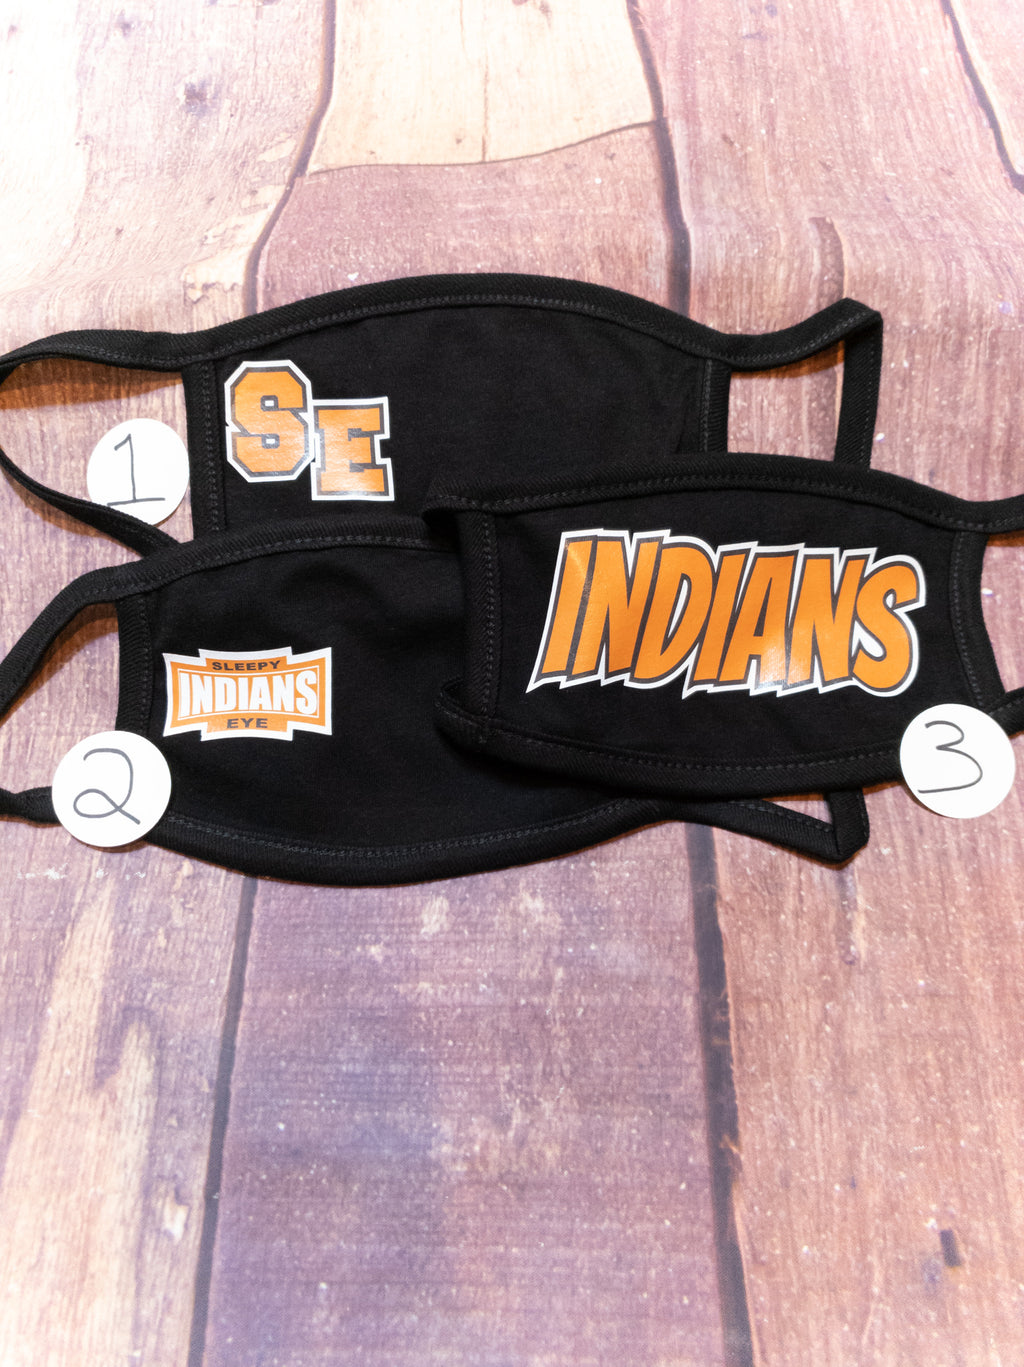 Indians Sleepy Eye Mask Options